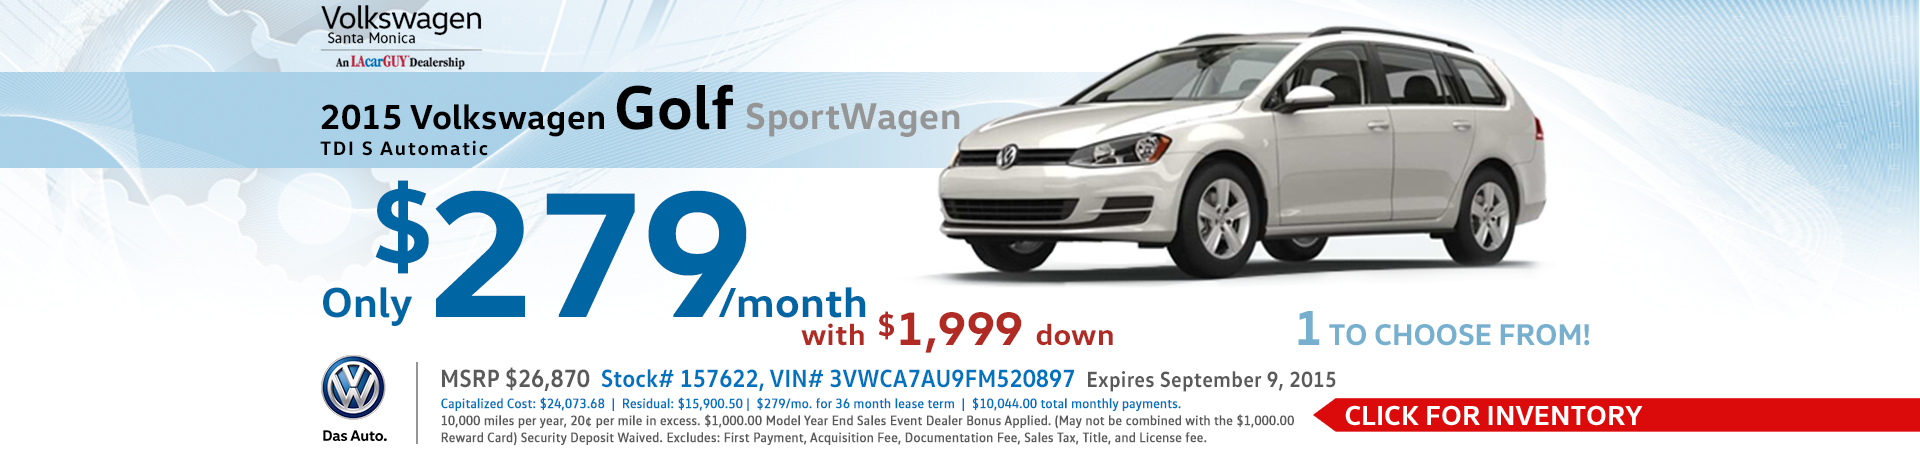 Lease a New 2015 Volkswagen Golf SportWagen at a special low monthly payment at VW Santa Monica